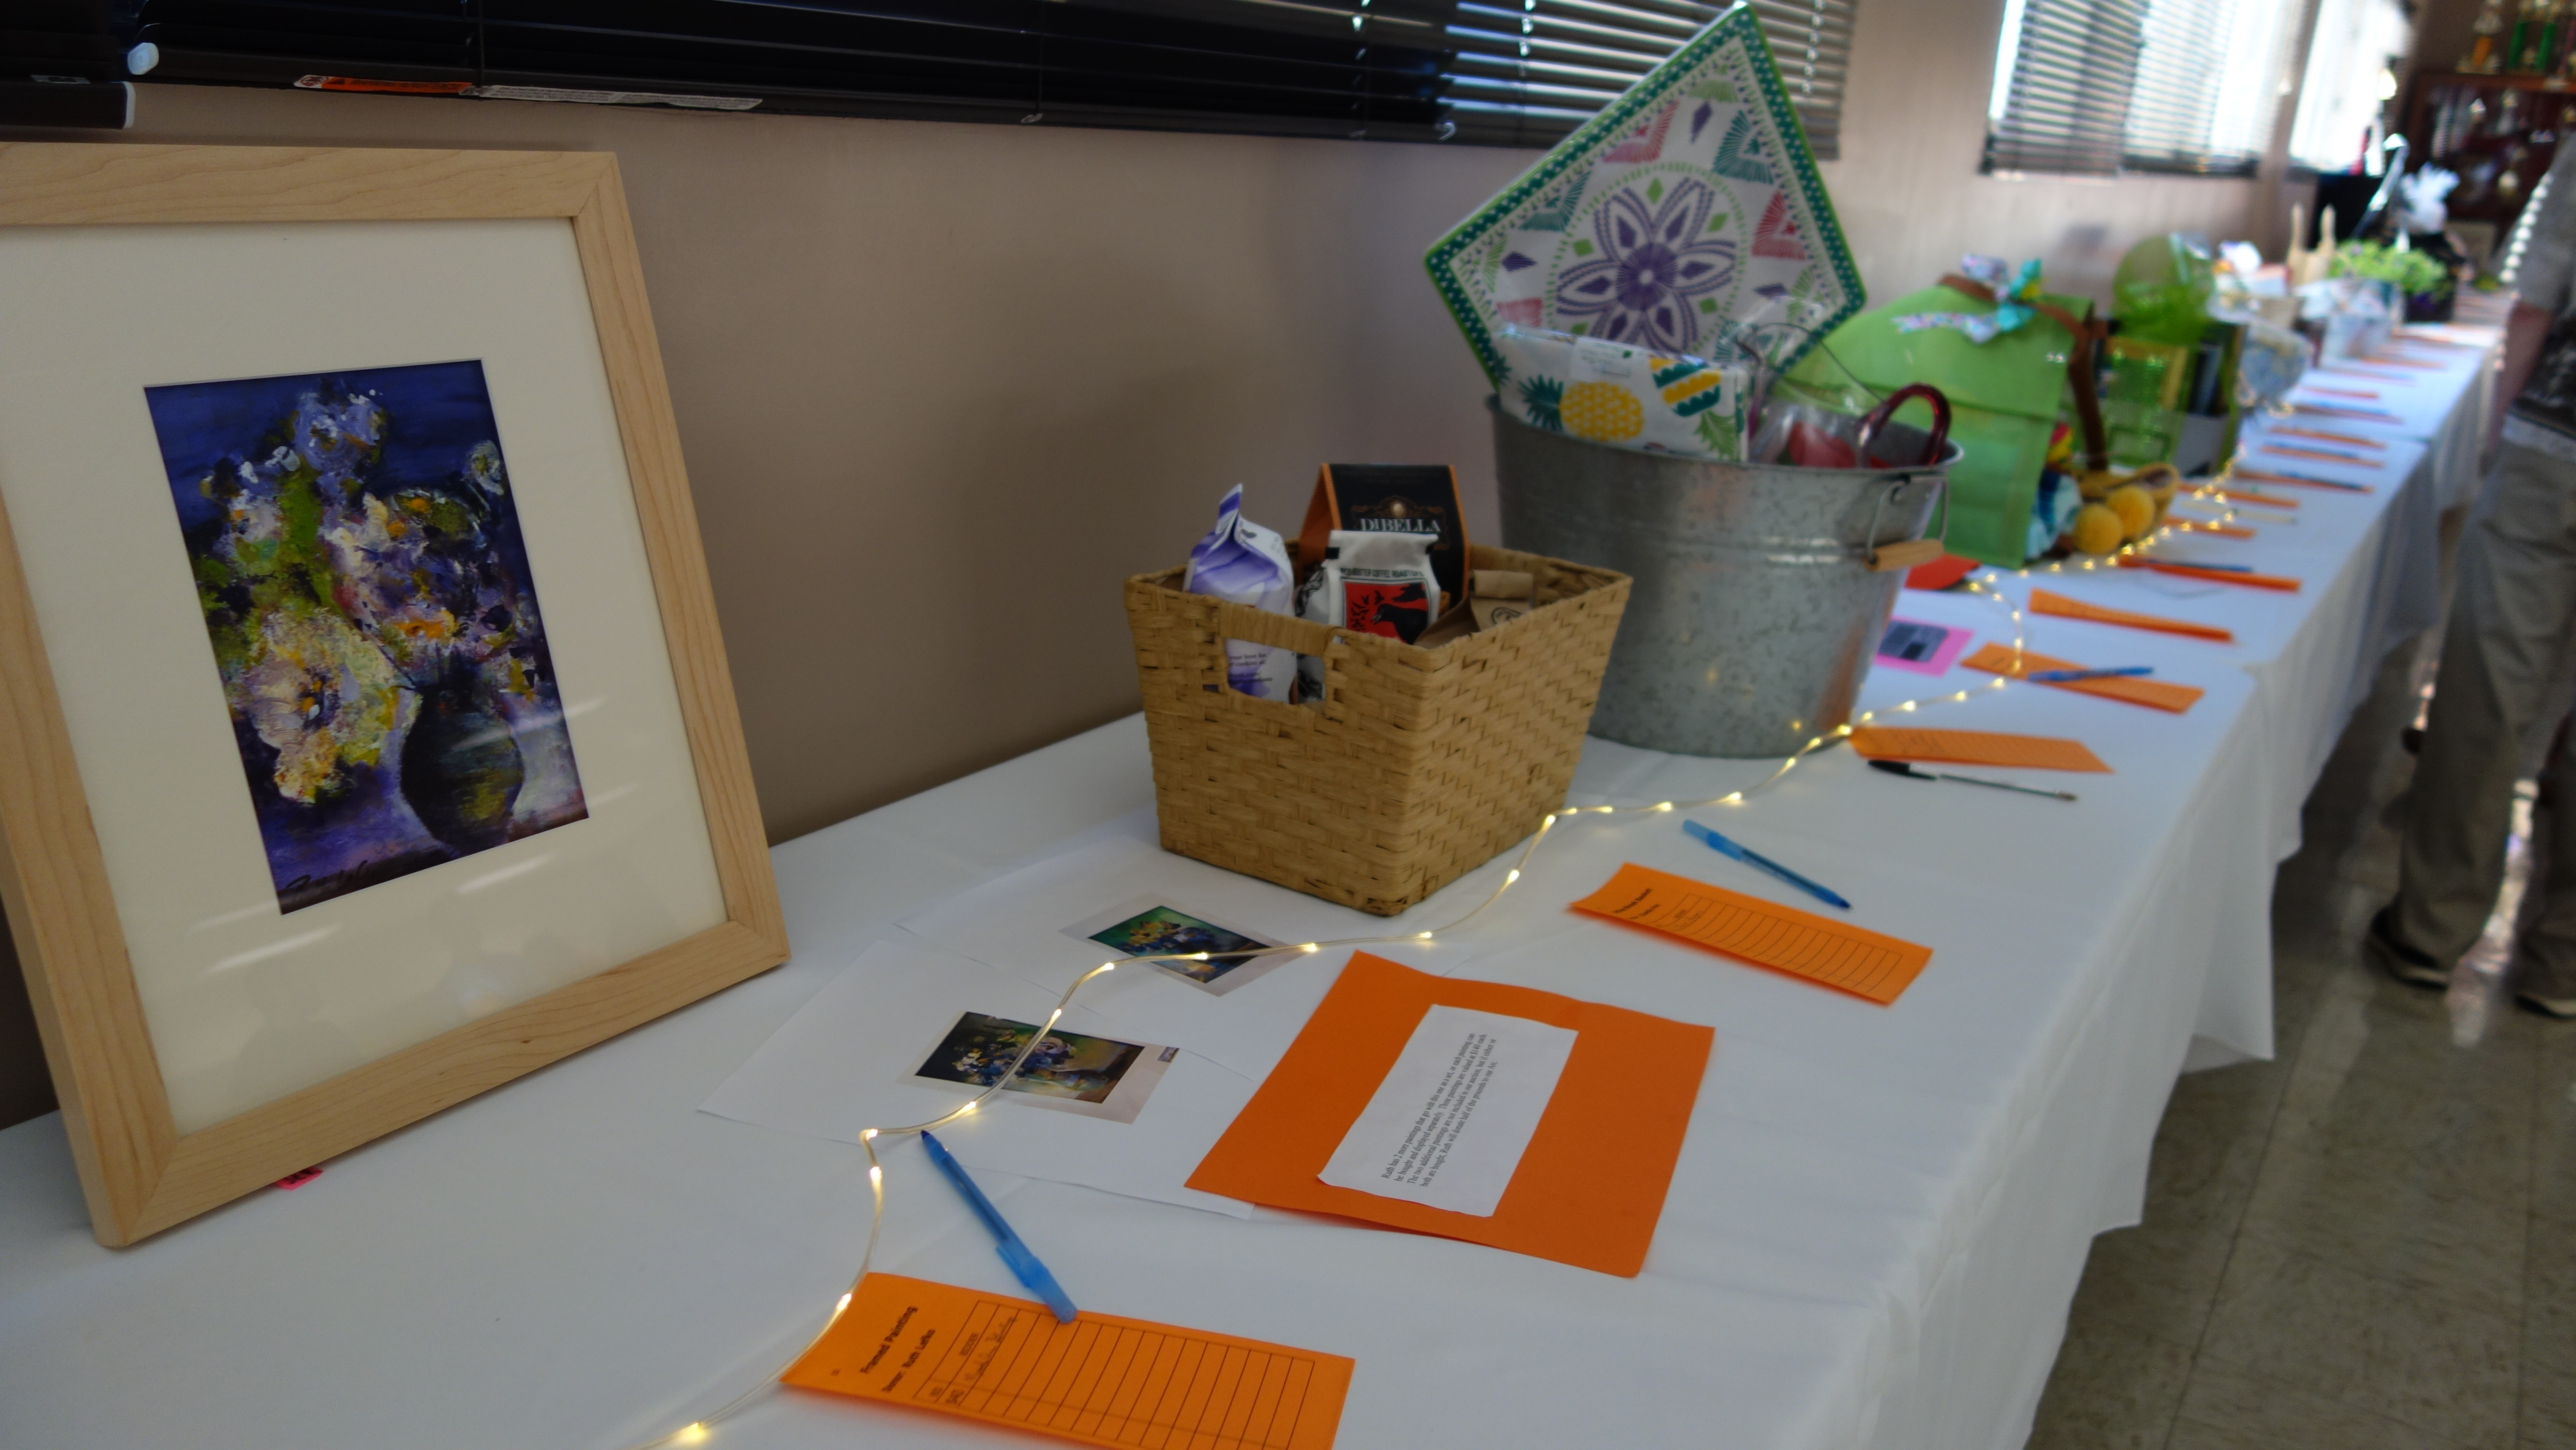 The charity auction at the 2018 Annual Event